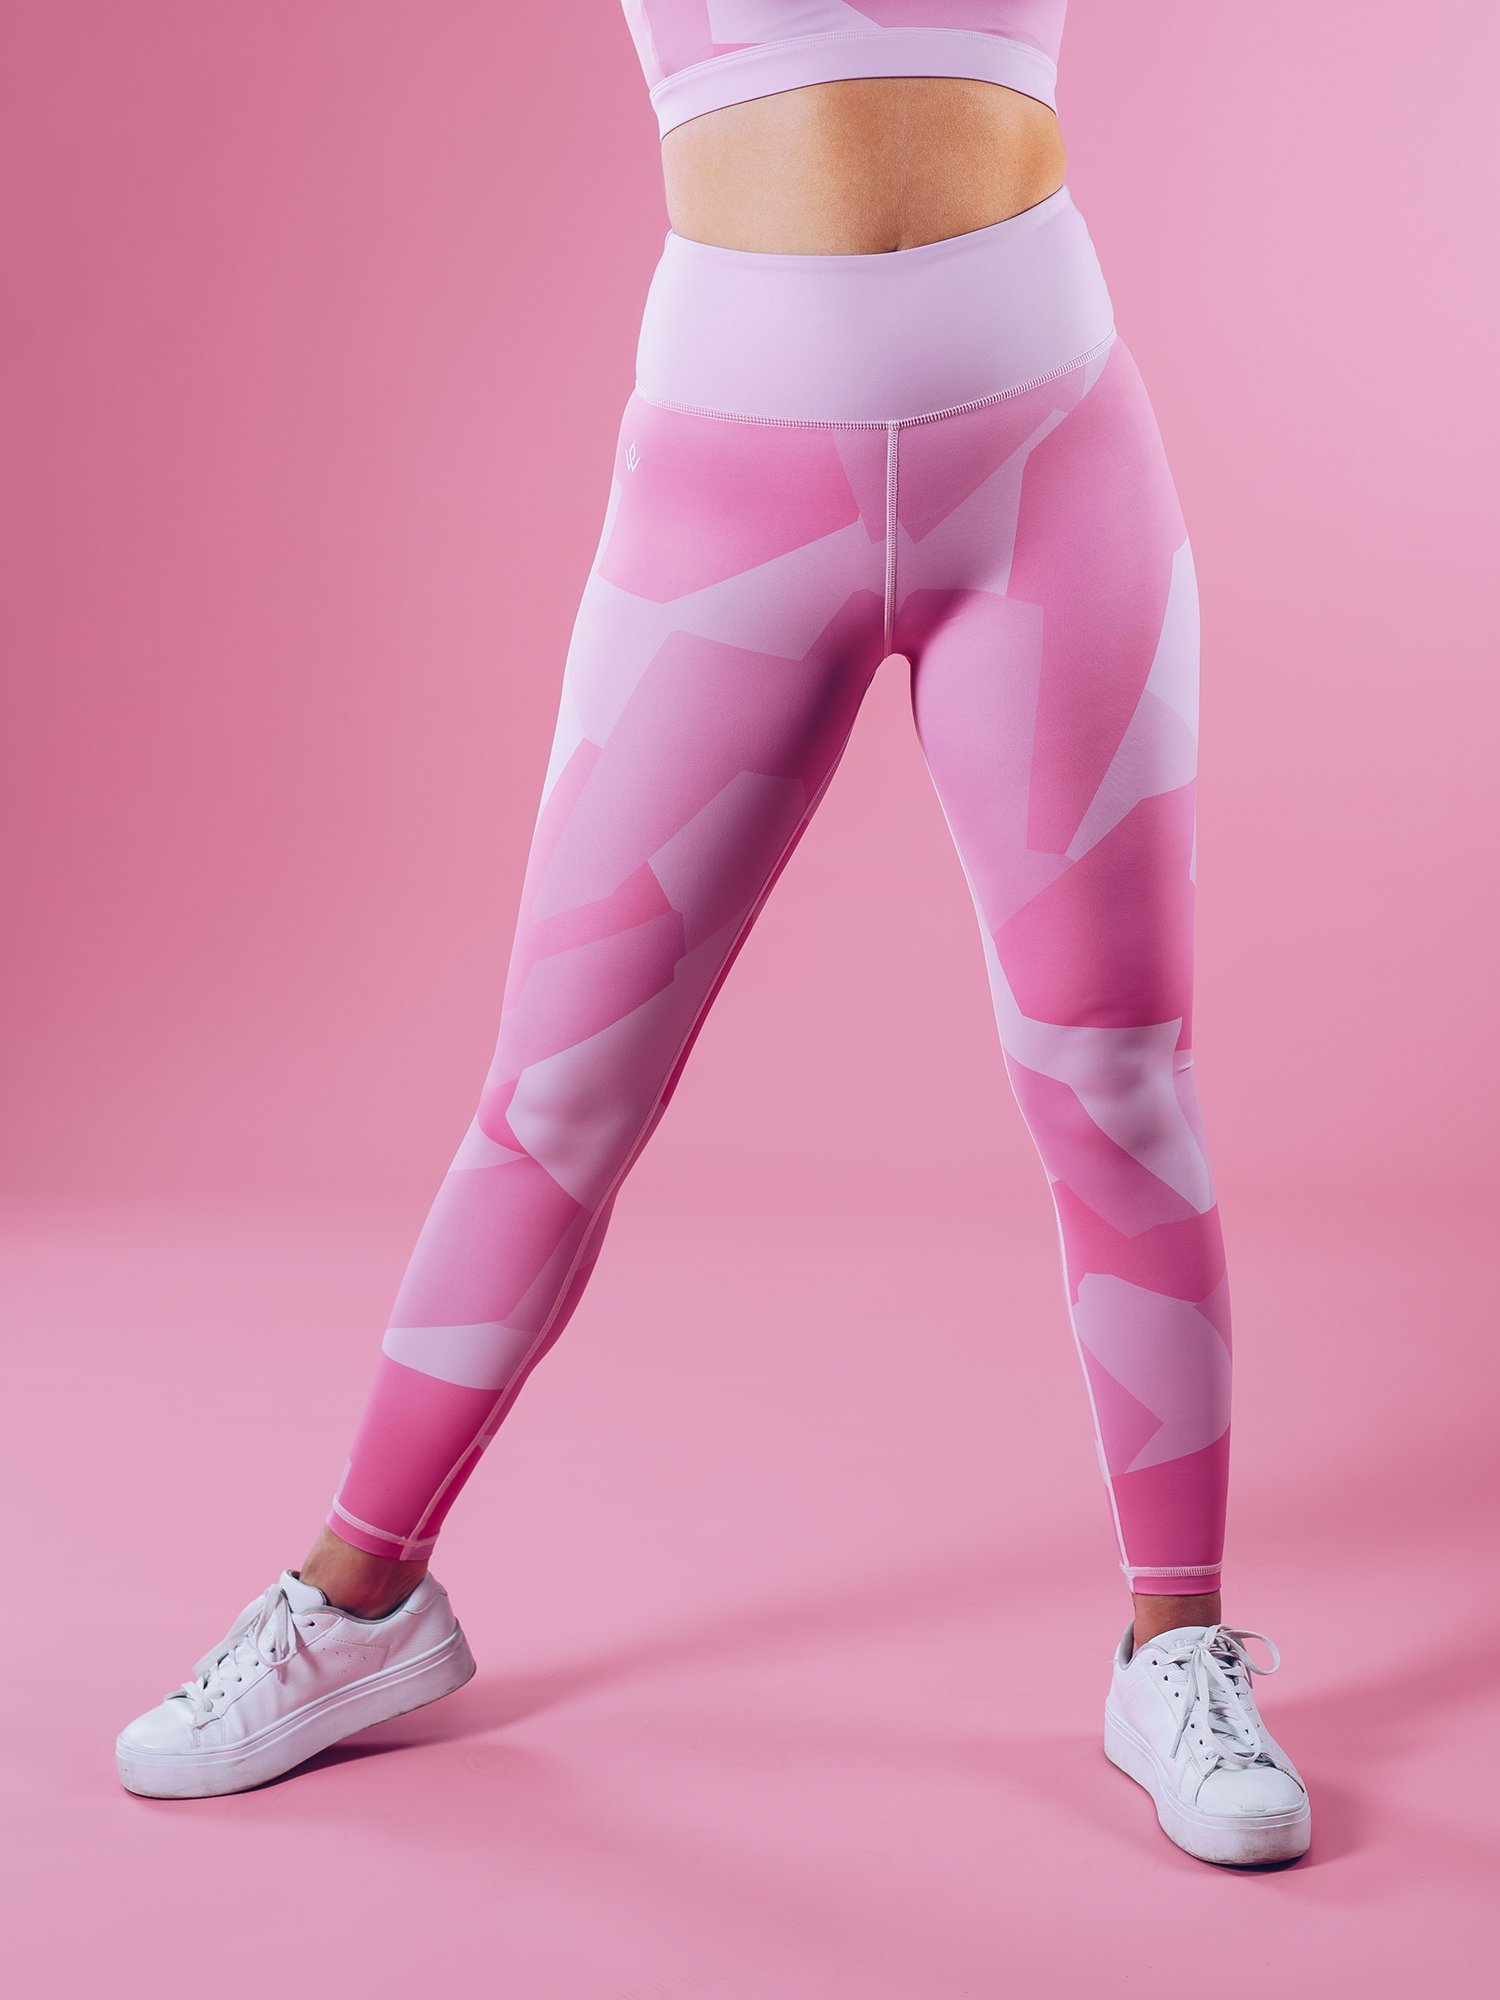 Shaping Sportlegging.Sportlegging Dames Camo Roze Workout Empire Shape